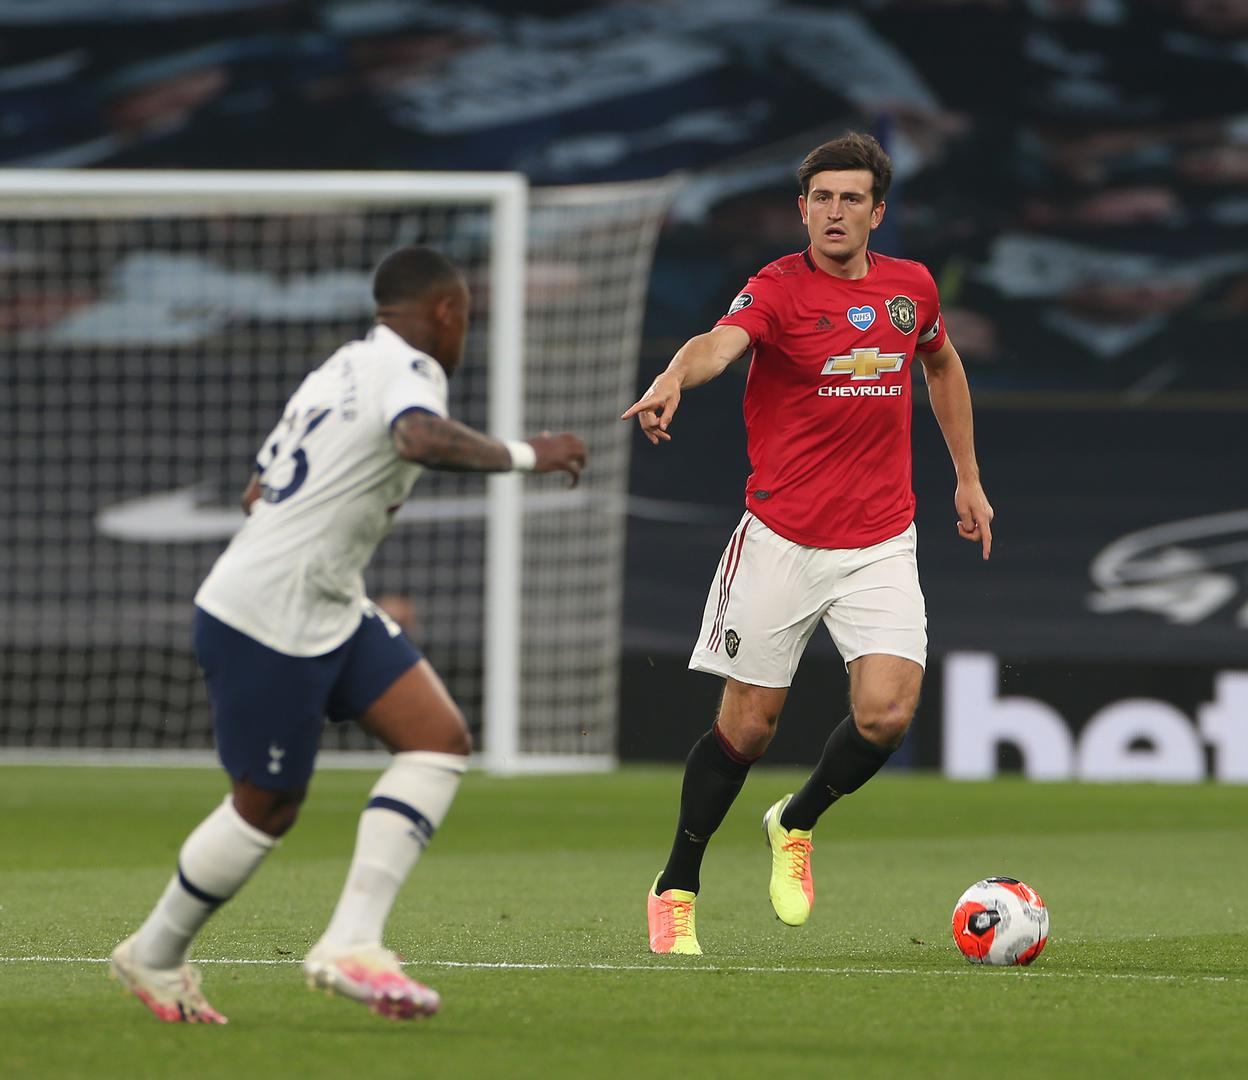 Harry Maguire on the ball against Tottenham Hotspur